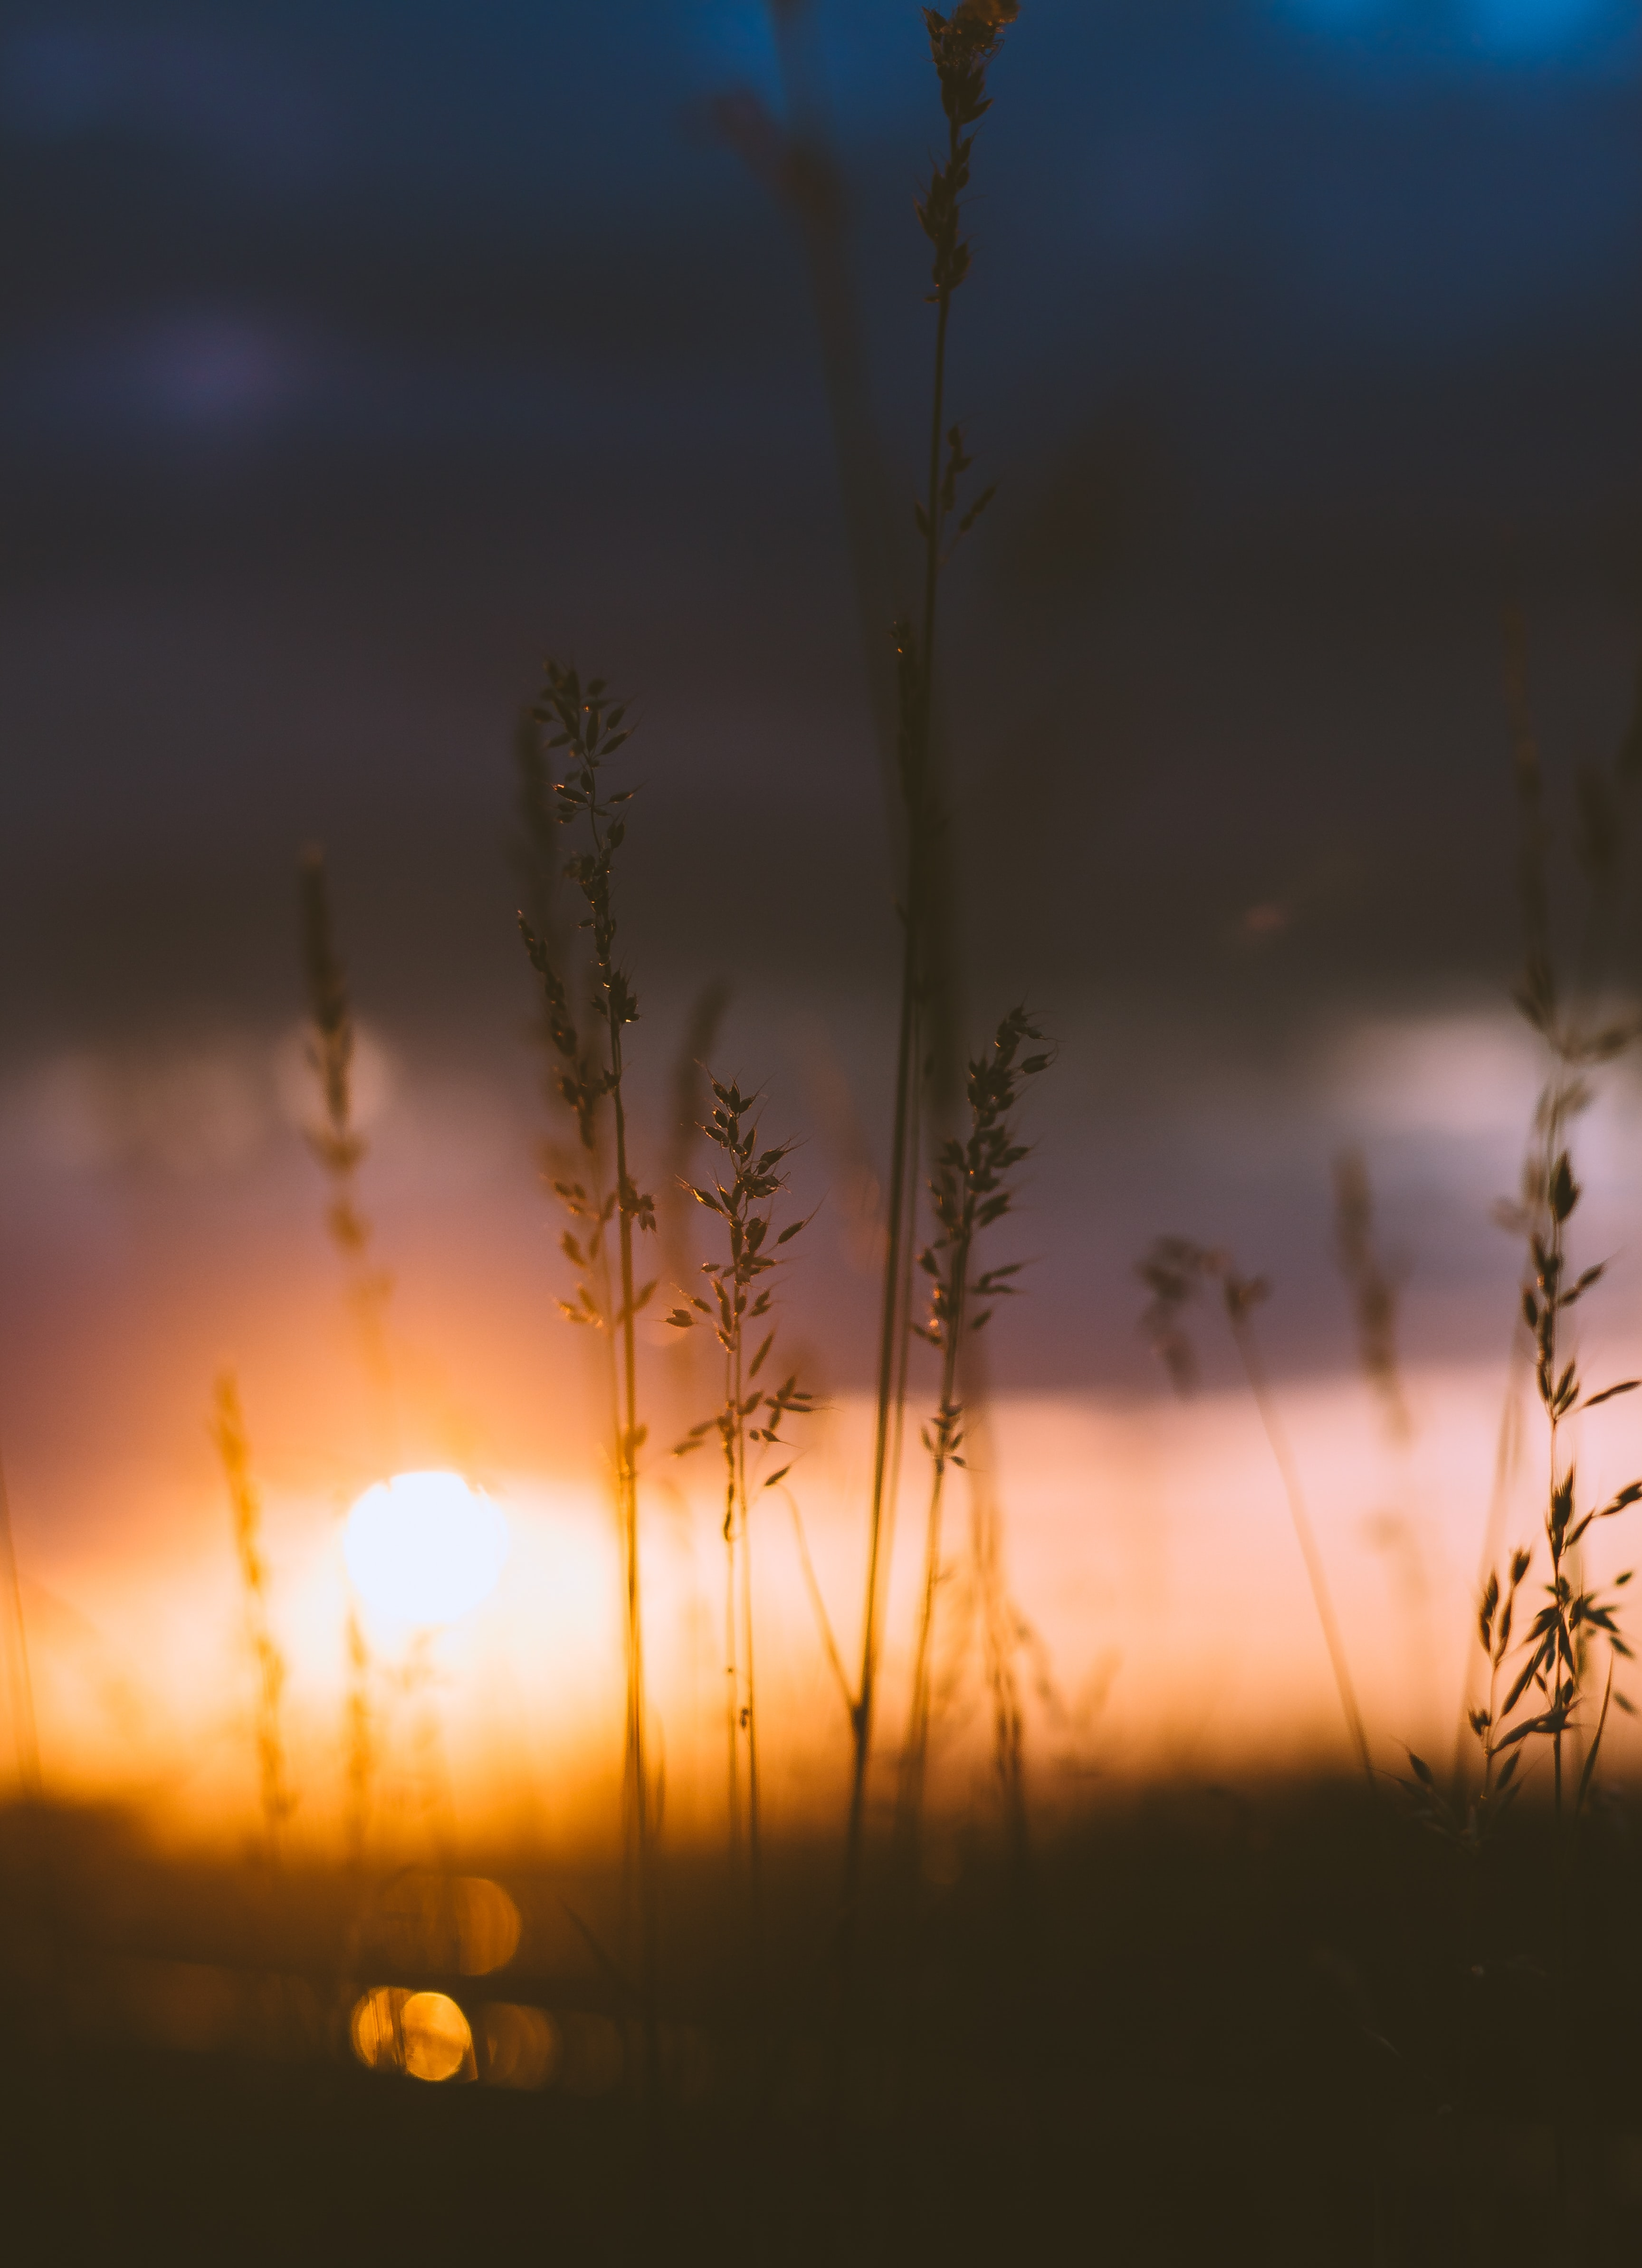 Setting sun behind blades of grass